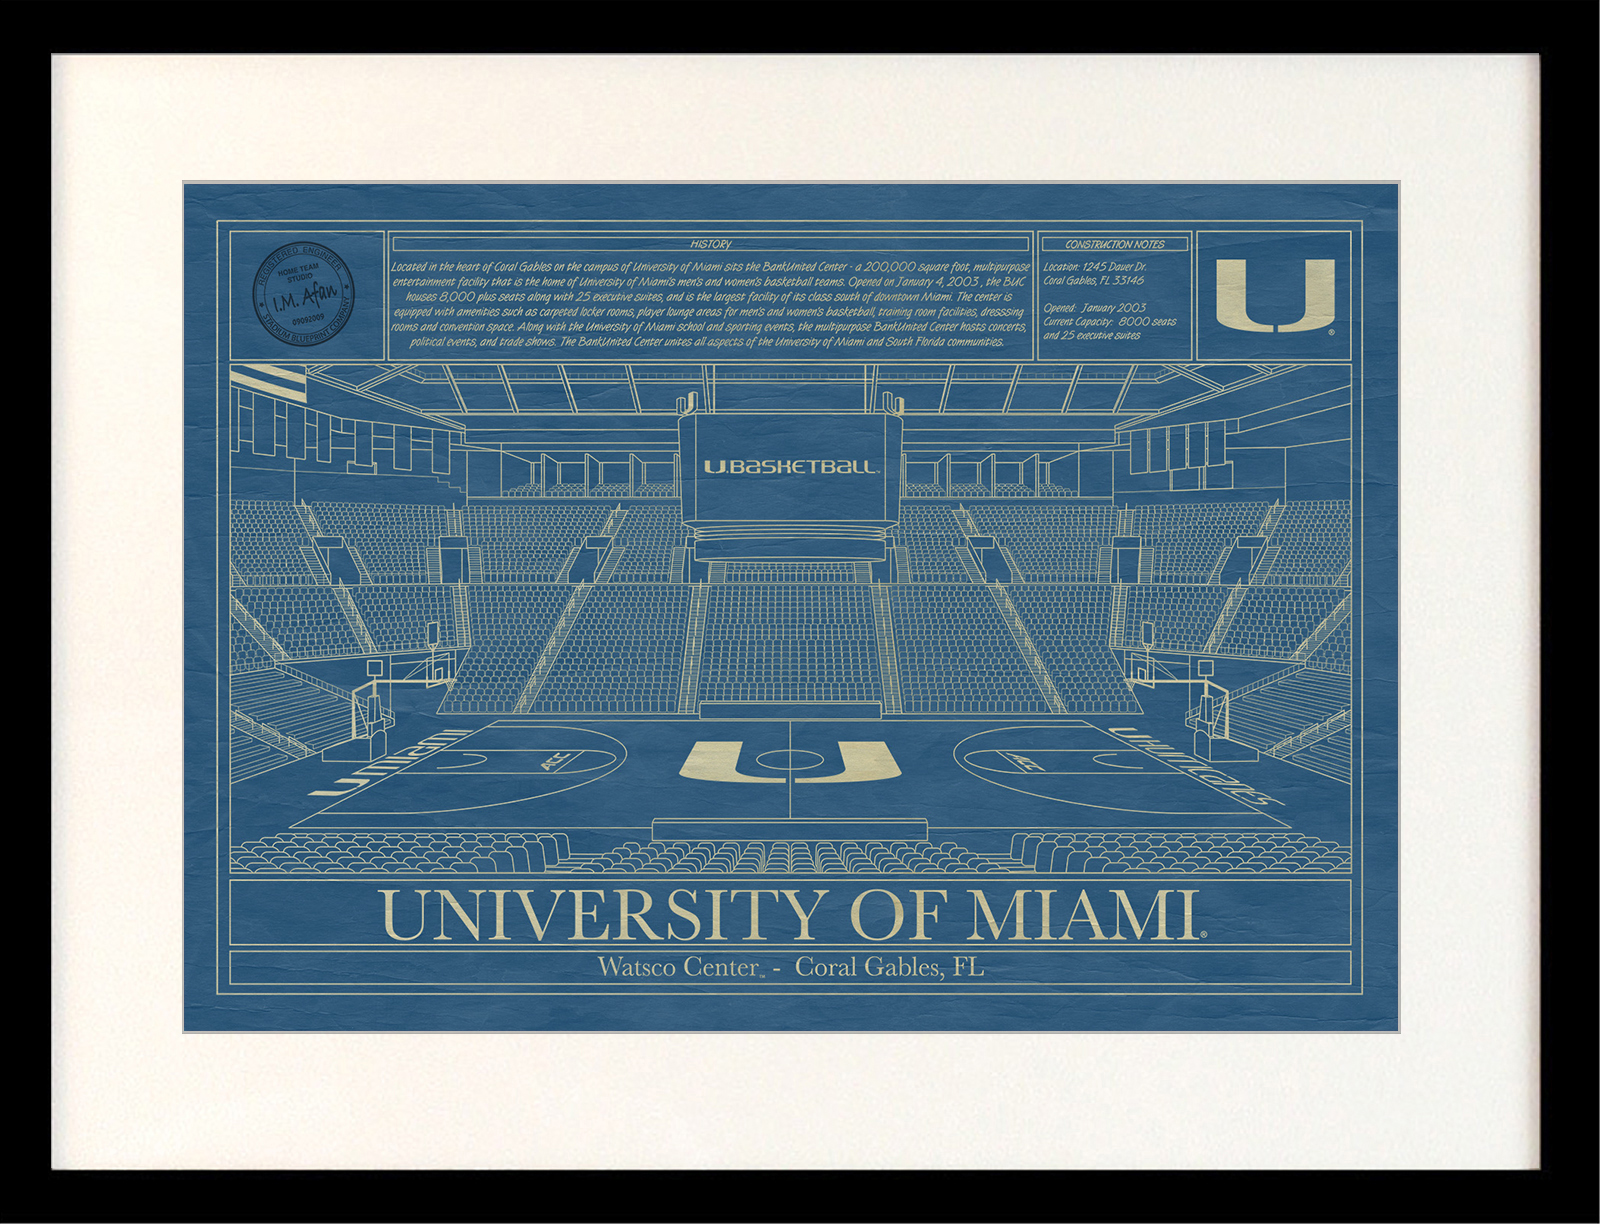 Miami wastco center blueprint art stadium blueprint company click malvernweather Image collections